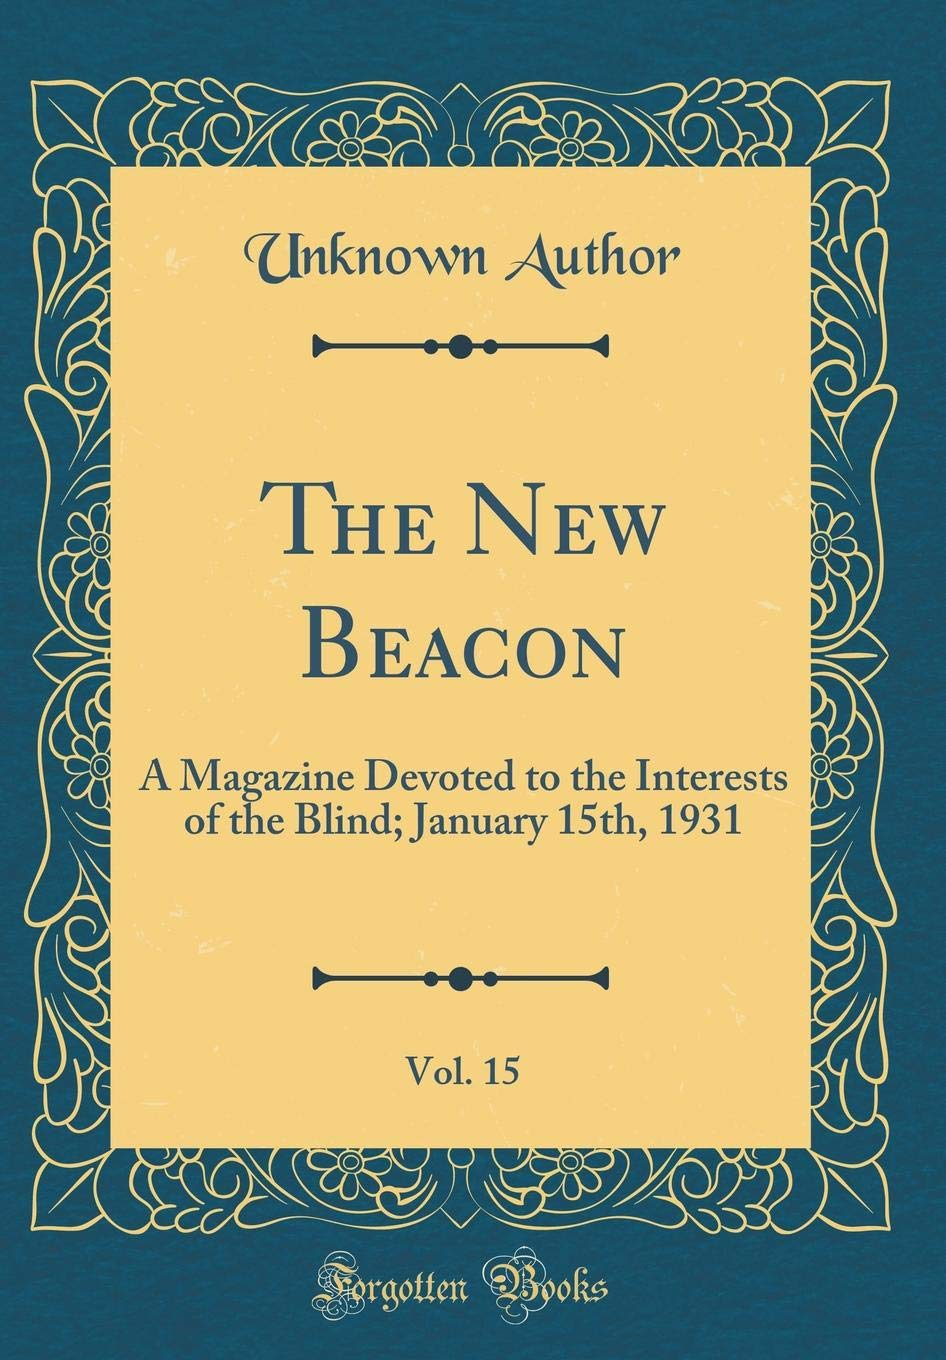 The New Beacon, Vol. 15: A Magazine Devoted to the Interests of the Blind; January 15th, 1931 (Classic Reprint) pdf